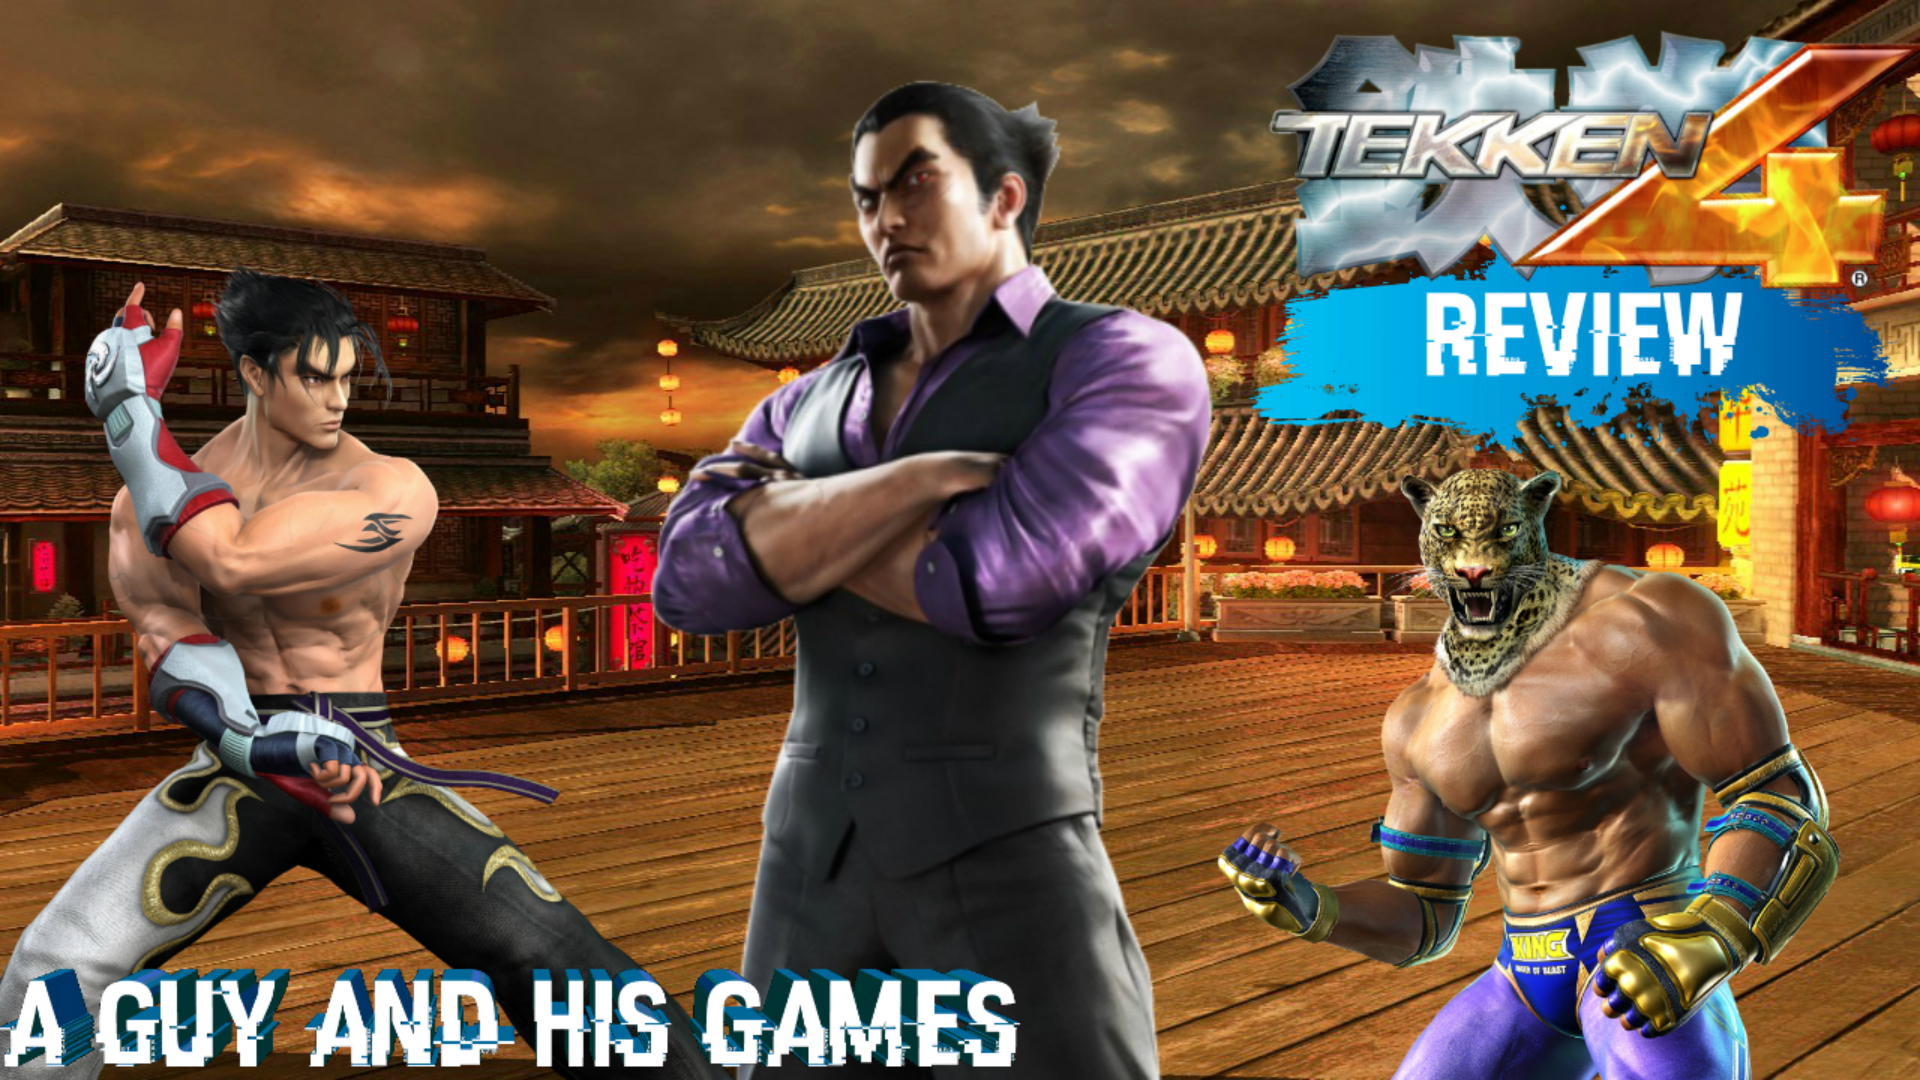 Amazon Com Watch Review Tekken 4 A Guy And His Games Review